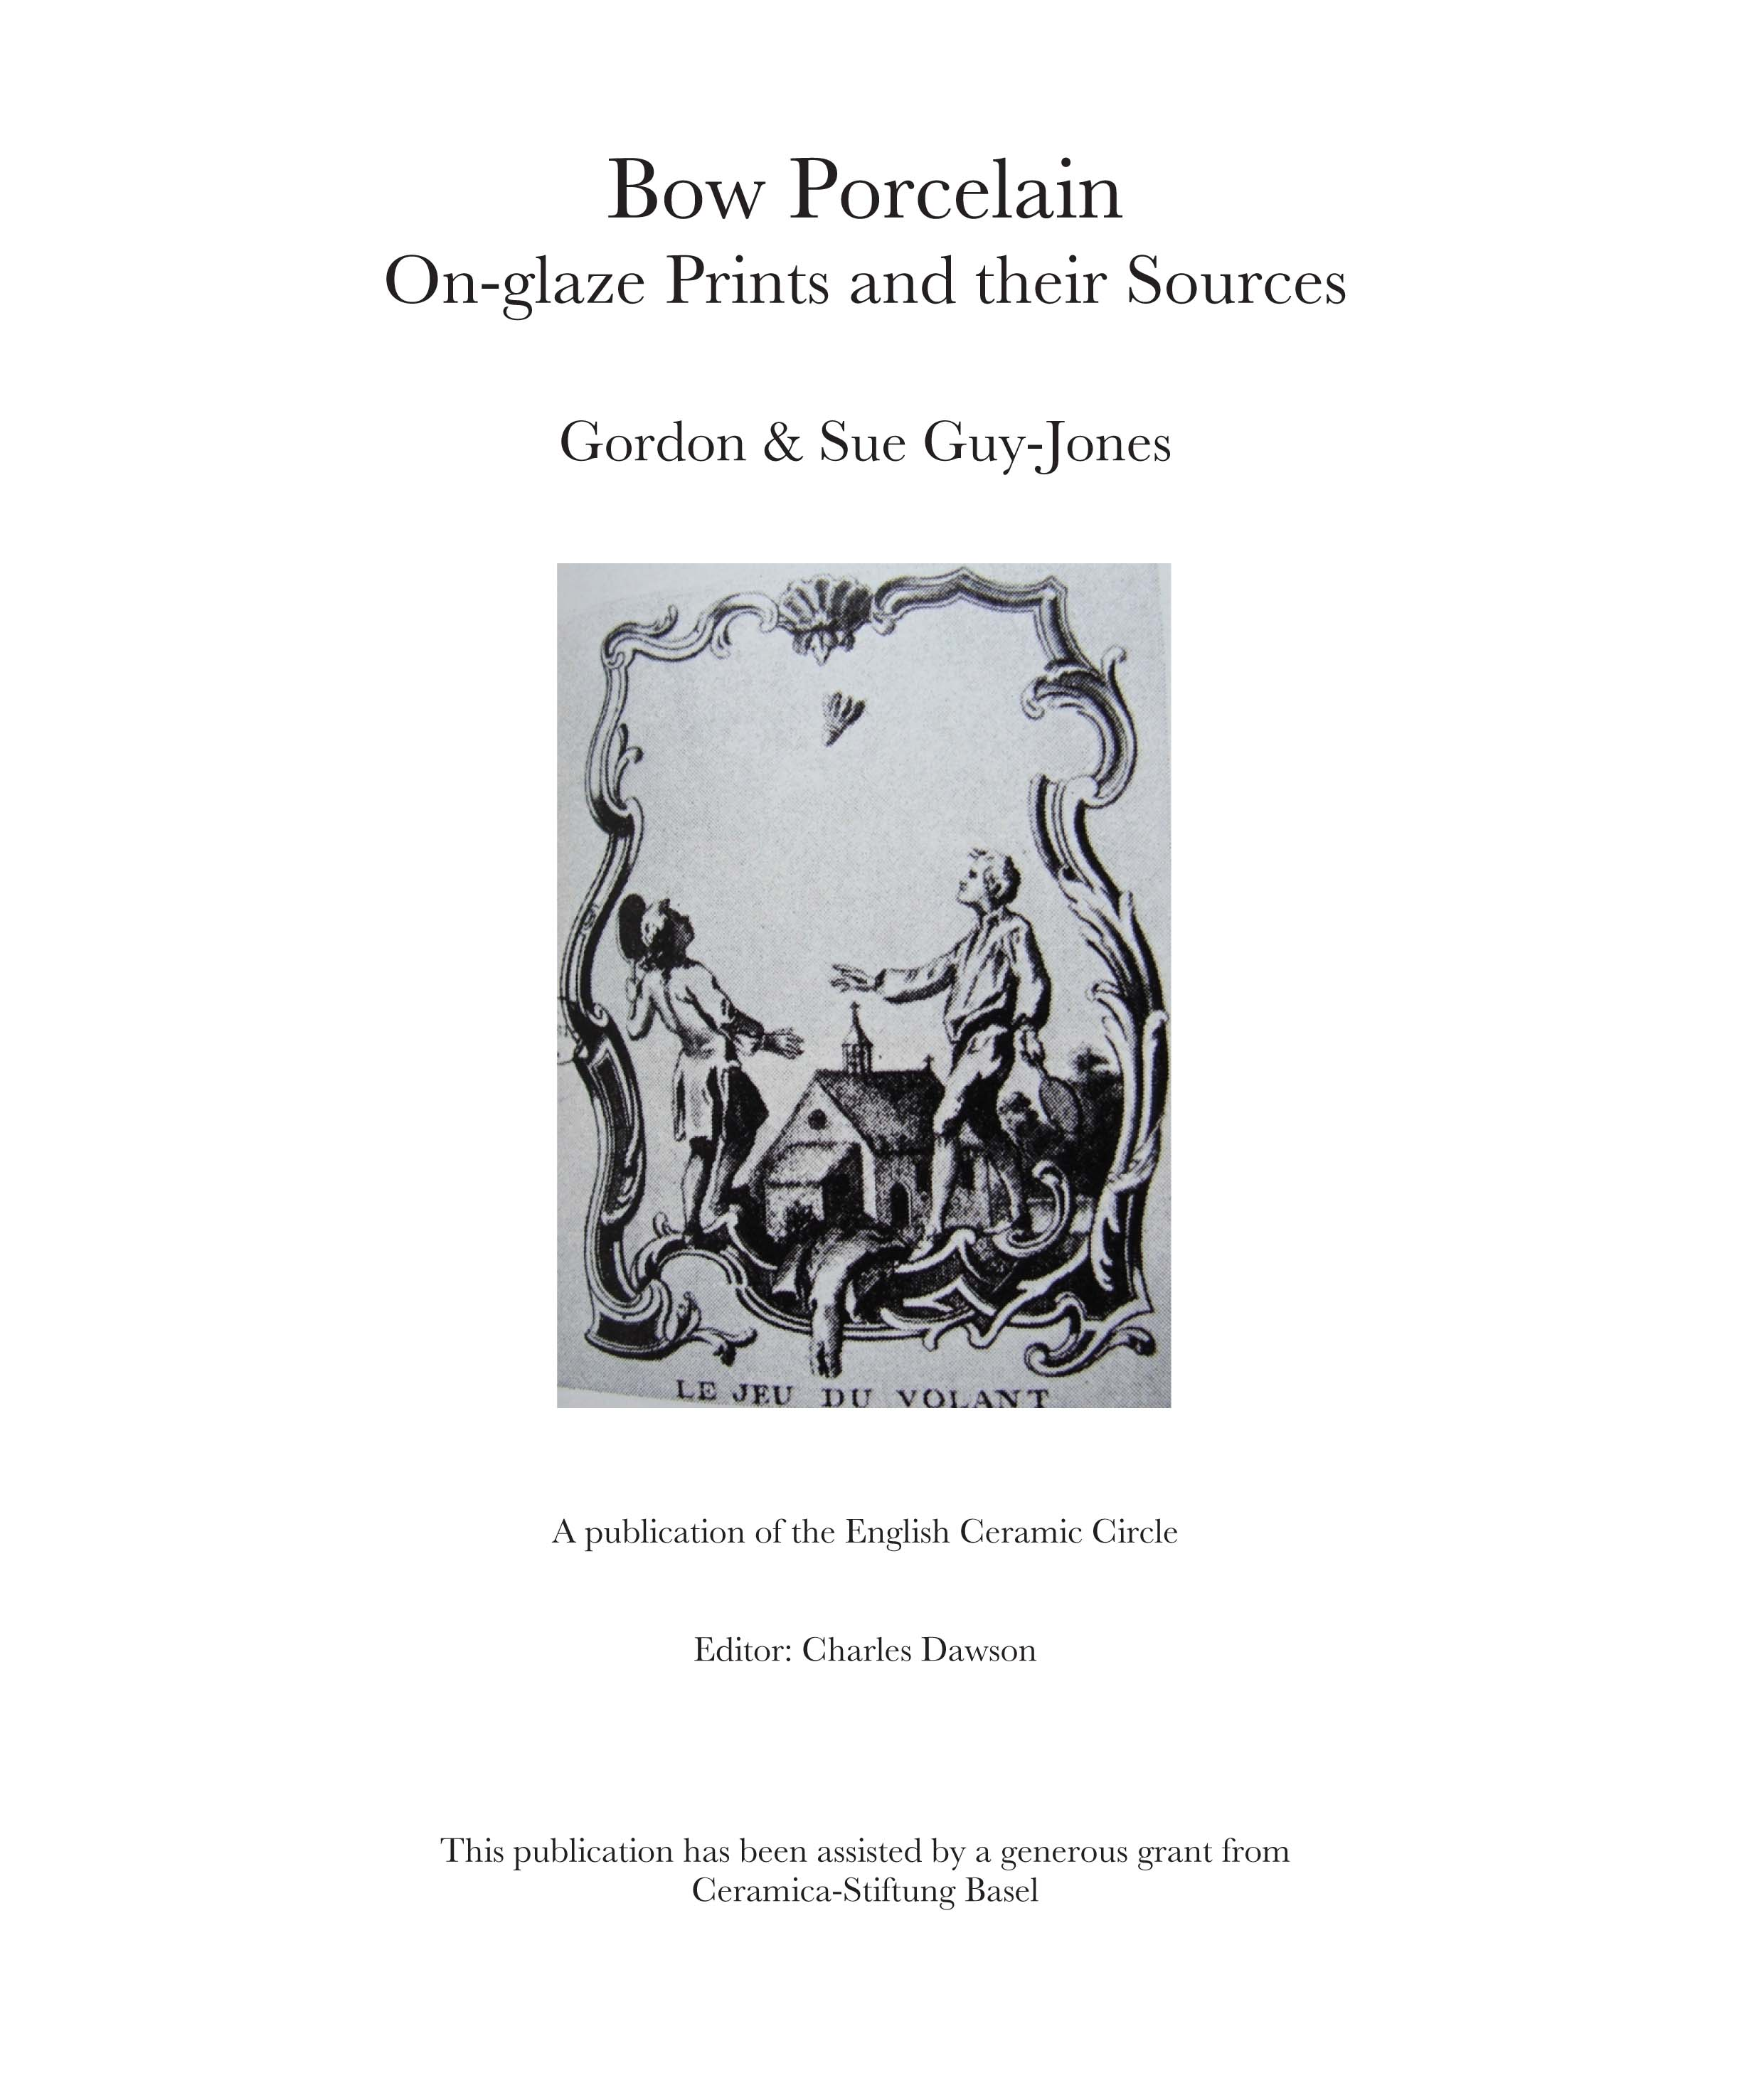 View Bow Porcelain on-glaze Prints and their Sources - Part 2